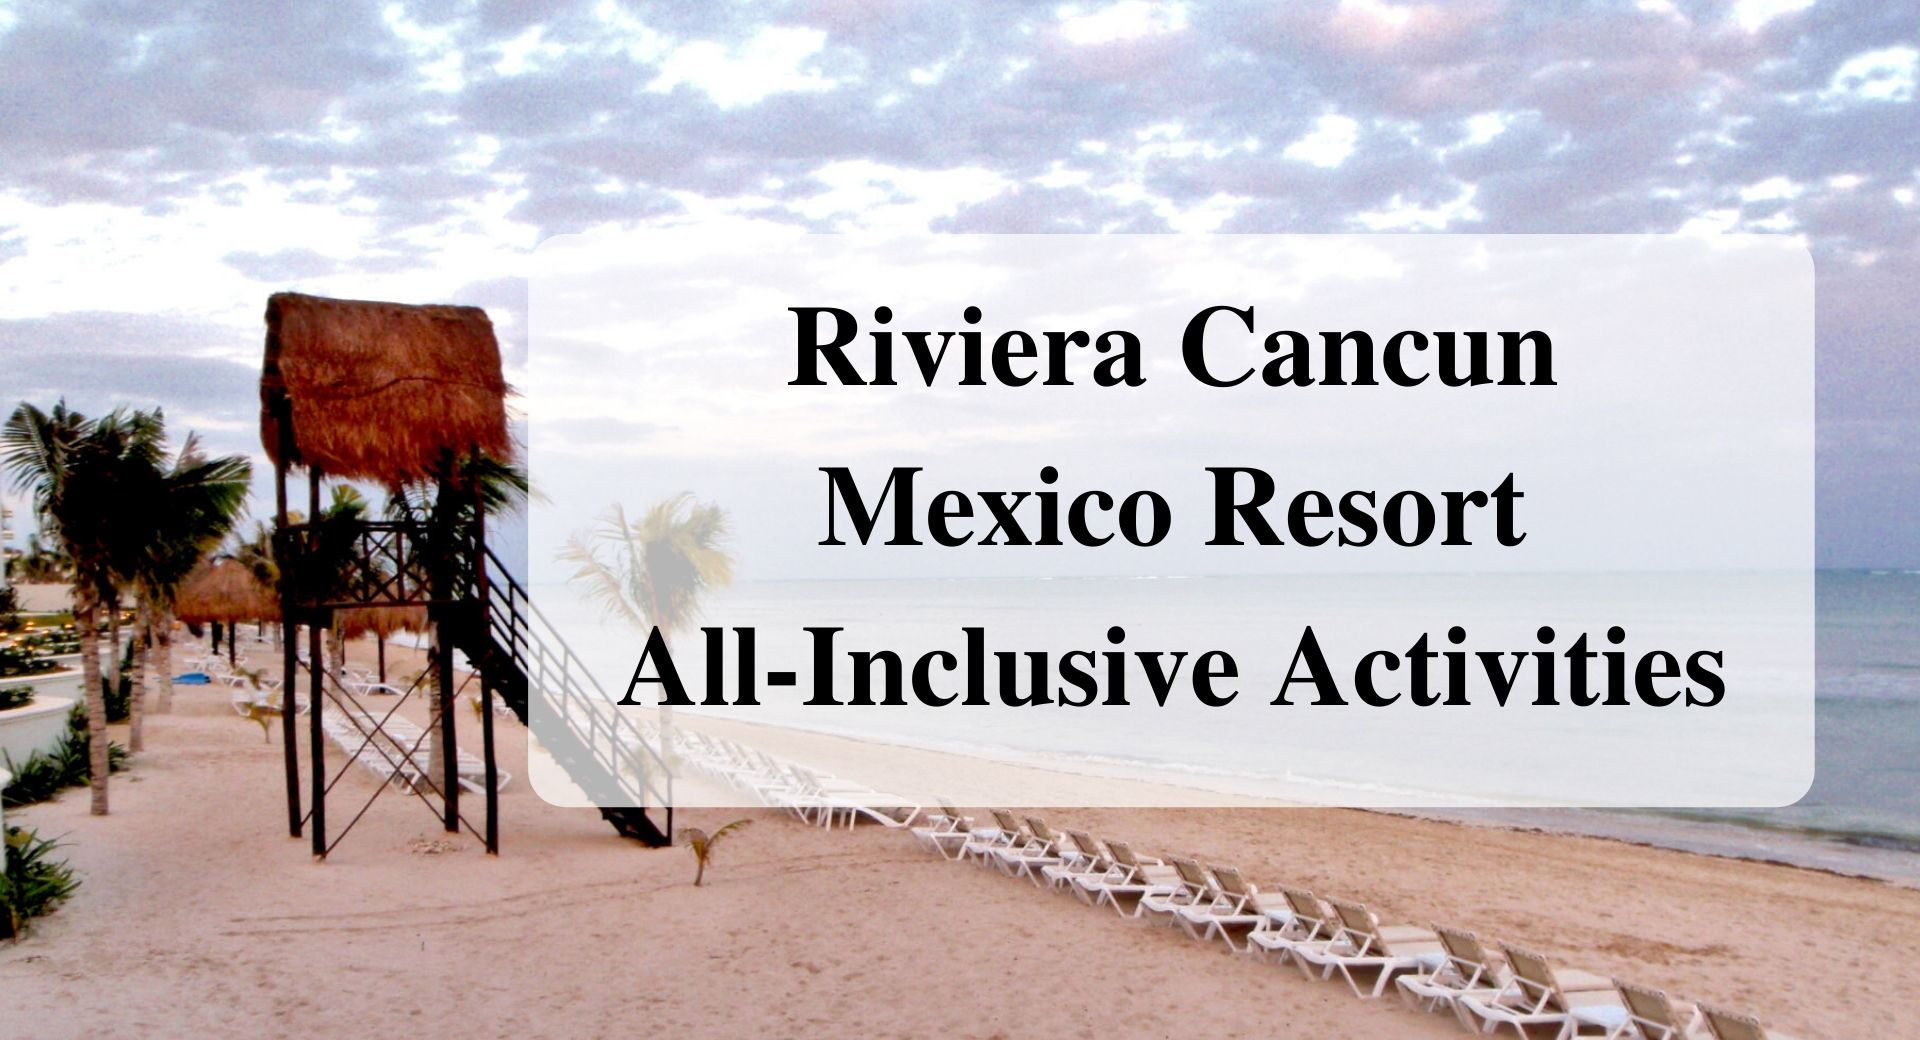 Main Riviera Cancun Mexico Resort All-Inclusive Activities